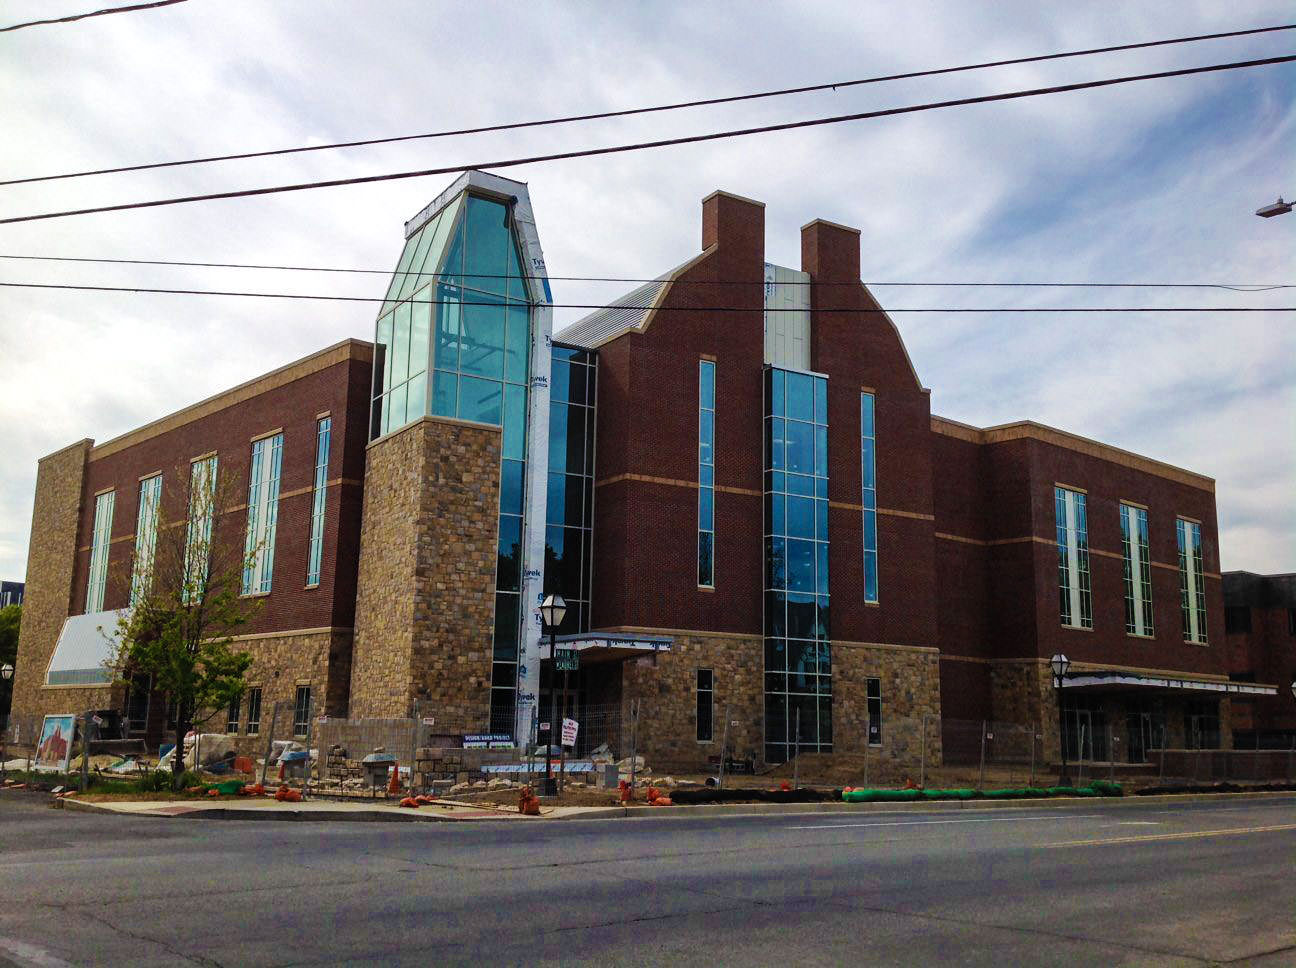 Sneak peak at Moravian College's new Sally Breidegam Miksiewicz Center for Health Sciences Building!